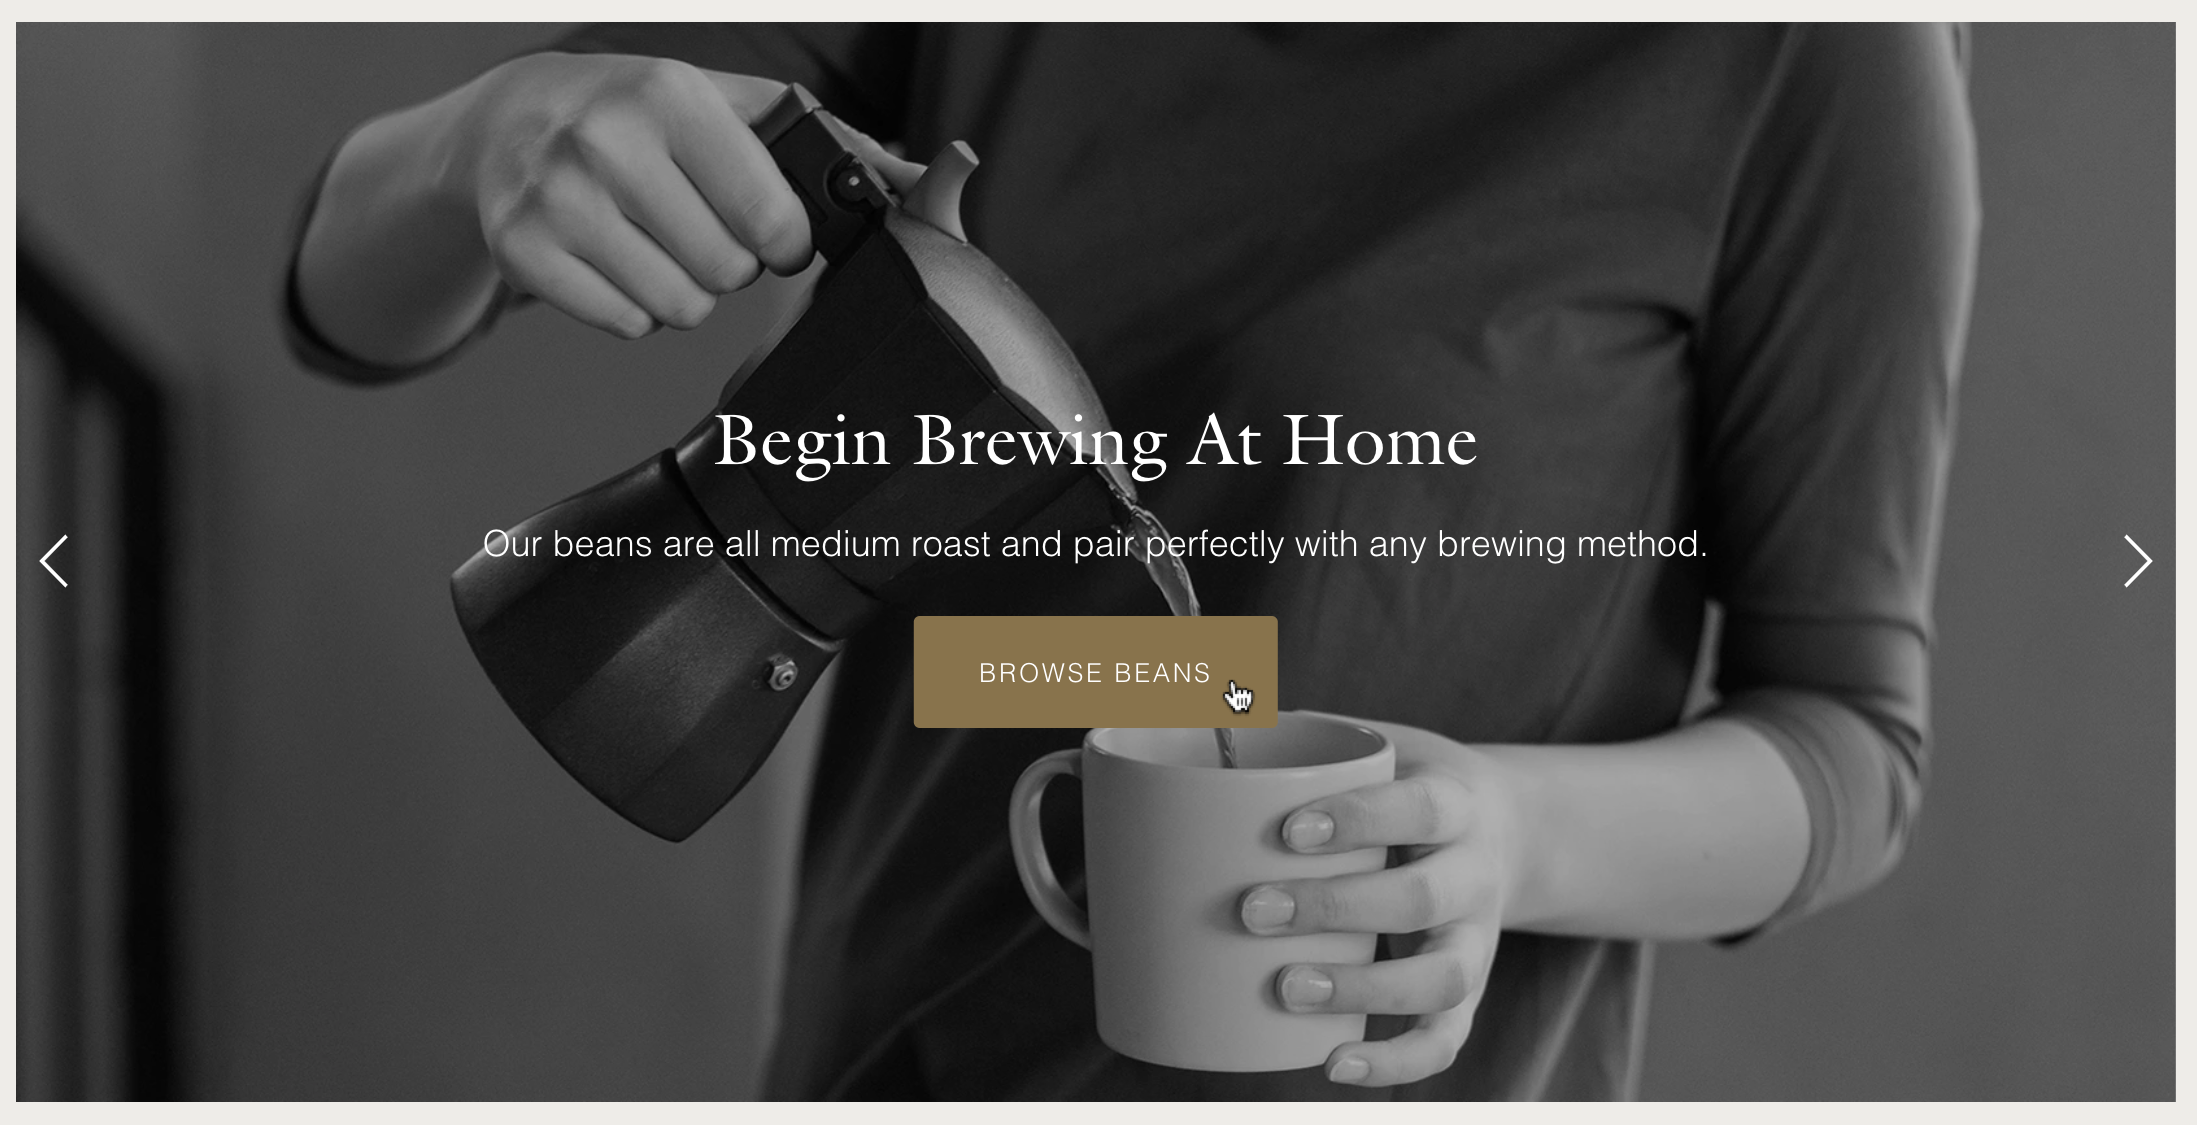 slideshow_with_hands_pouring_coffee_image.png